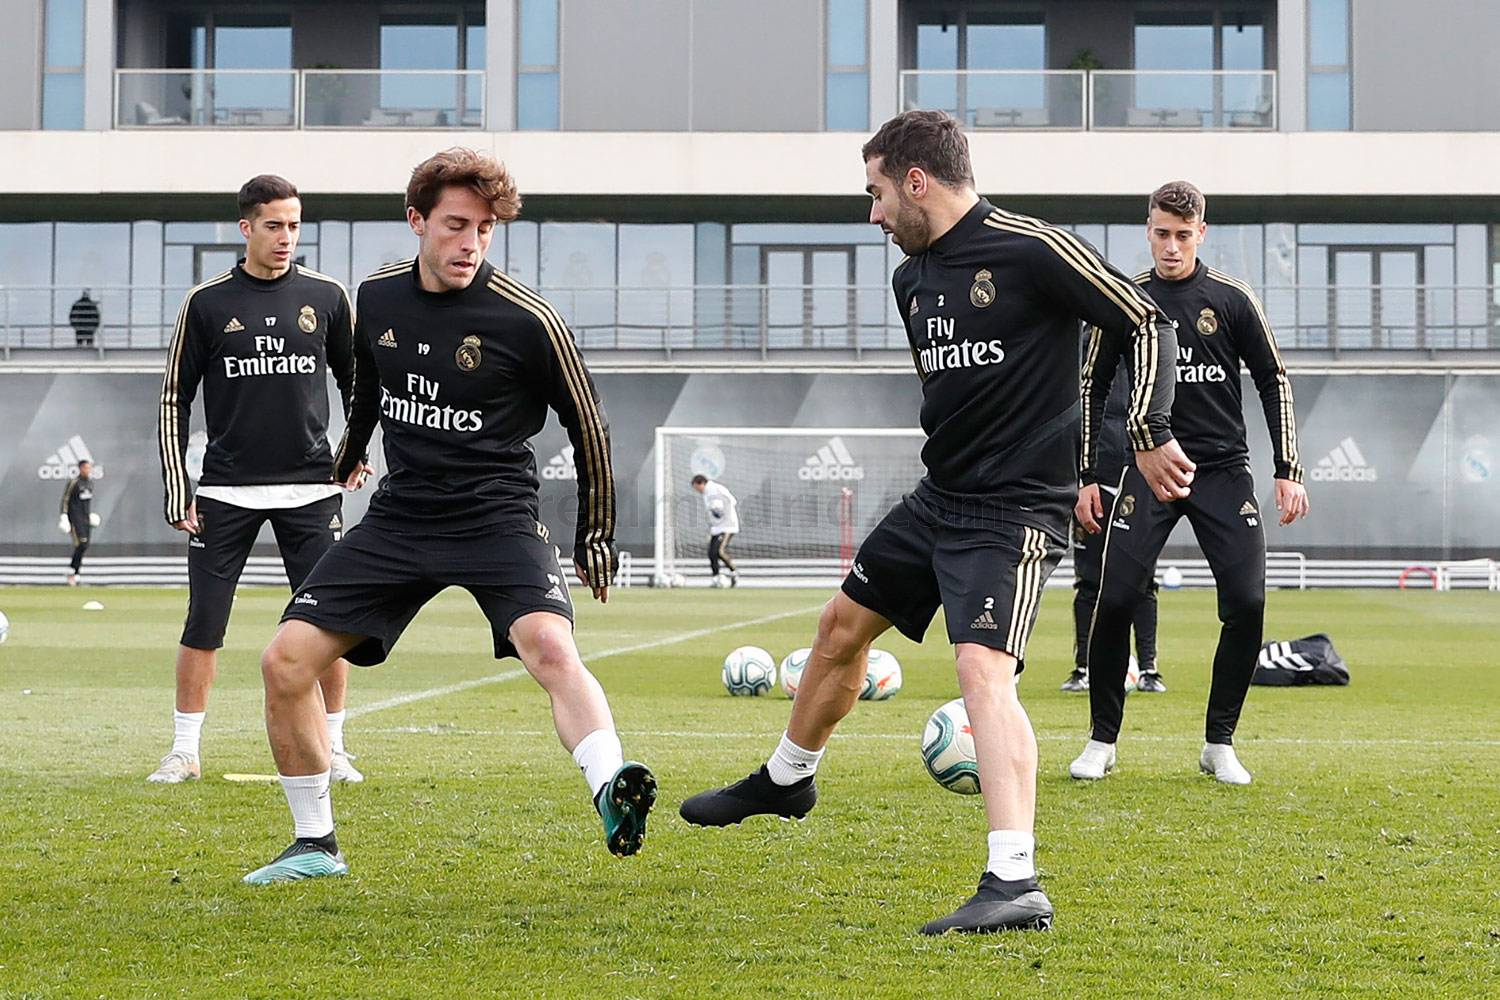 Real Madrid - Entrenamiento del Real Madrid  - 20-11-2019